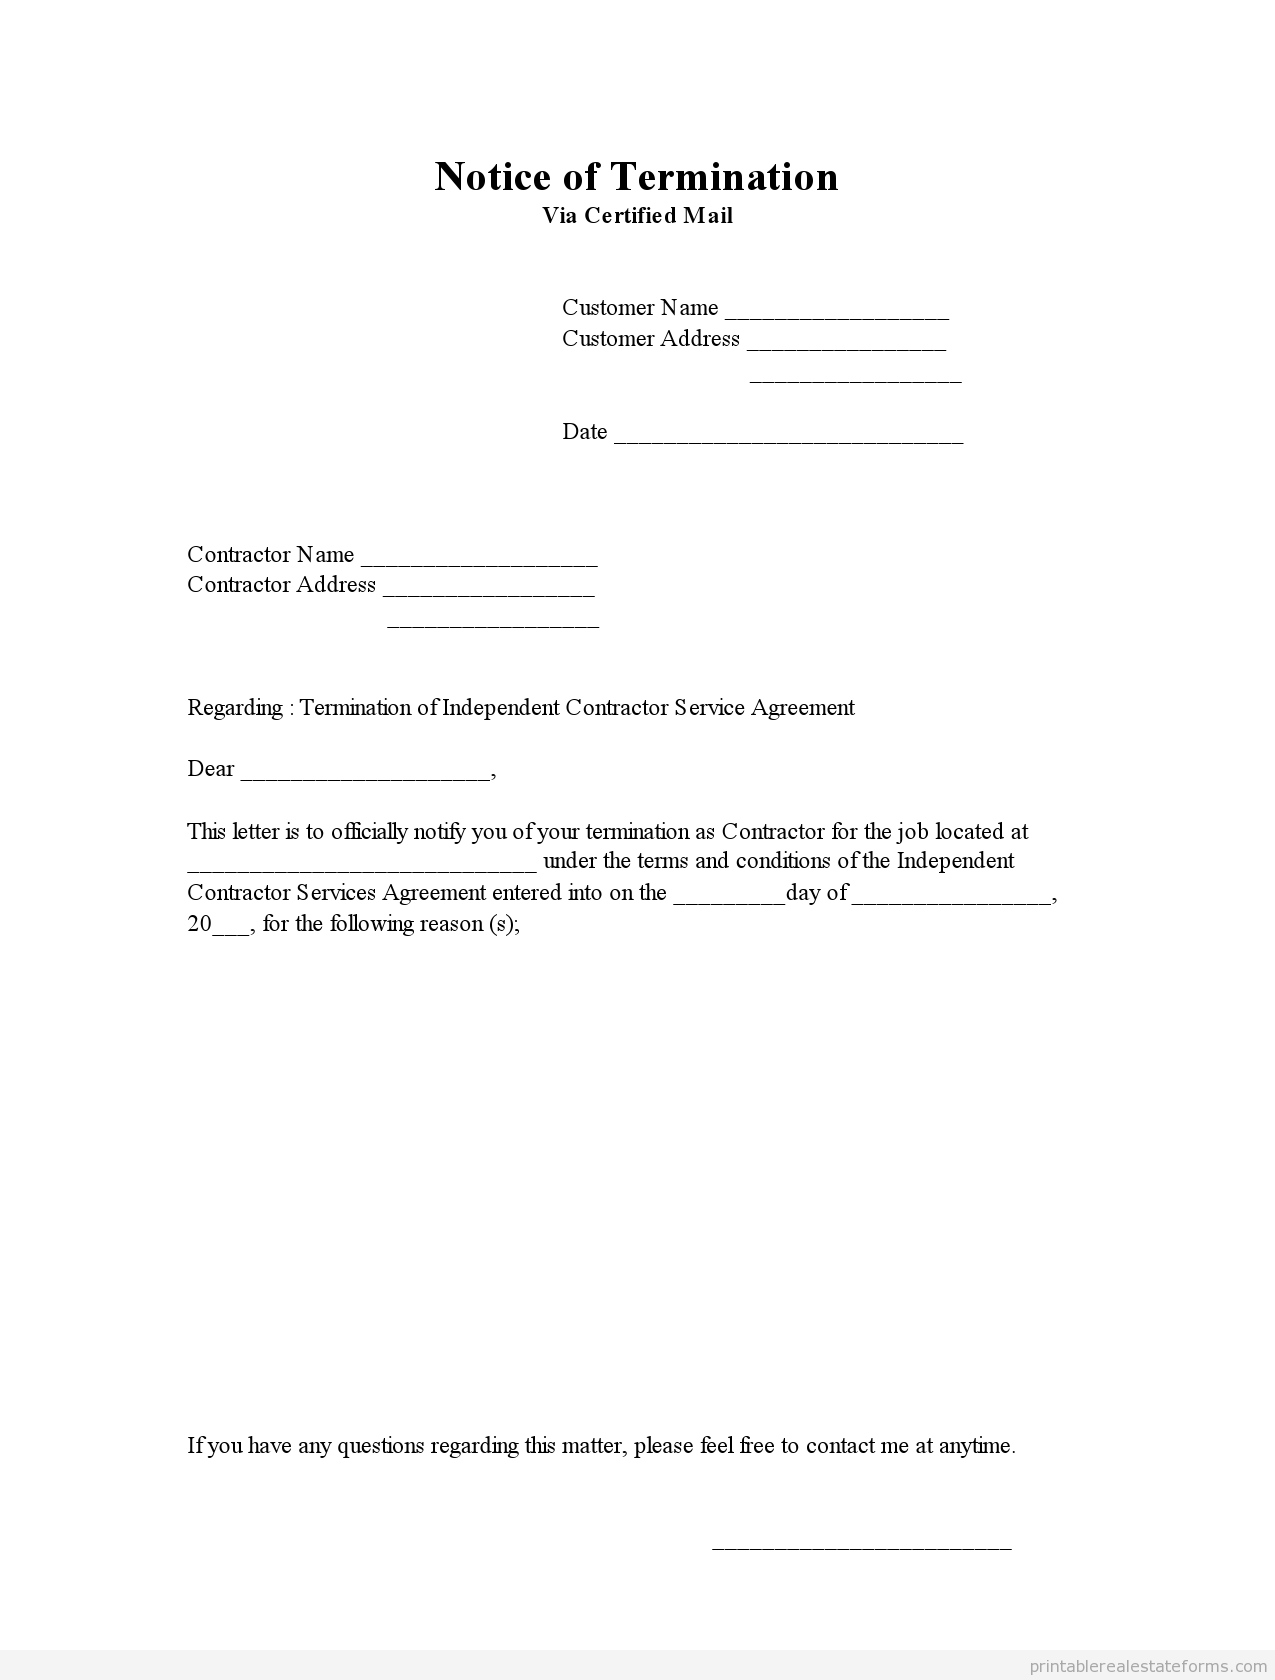 Free Notice Of Termination Form Printable Real Estate Forms Real Estate Forms Lettering Letter Templates Free